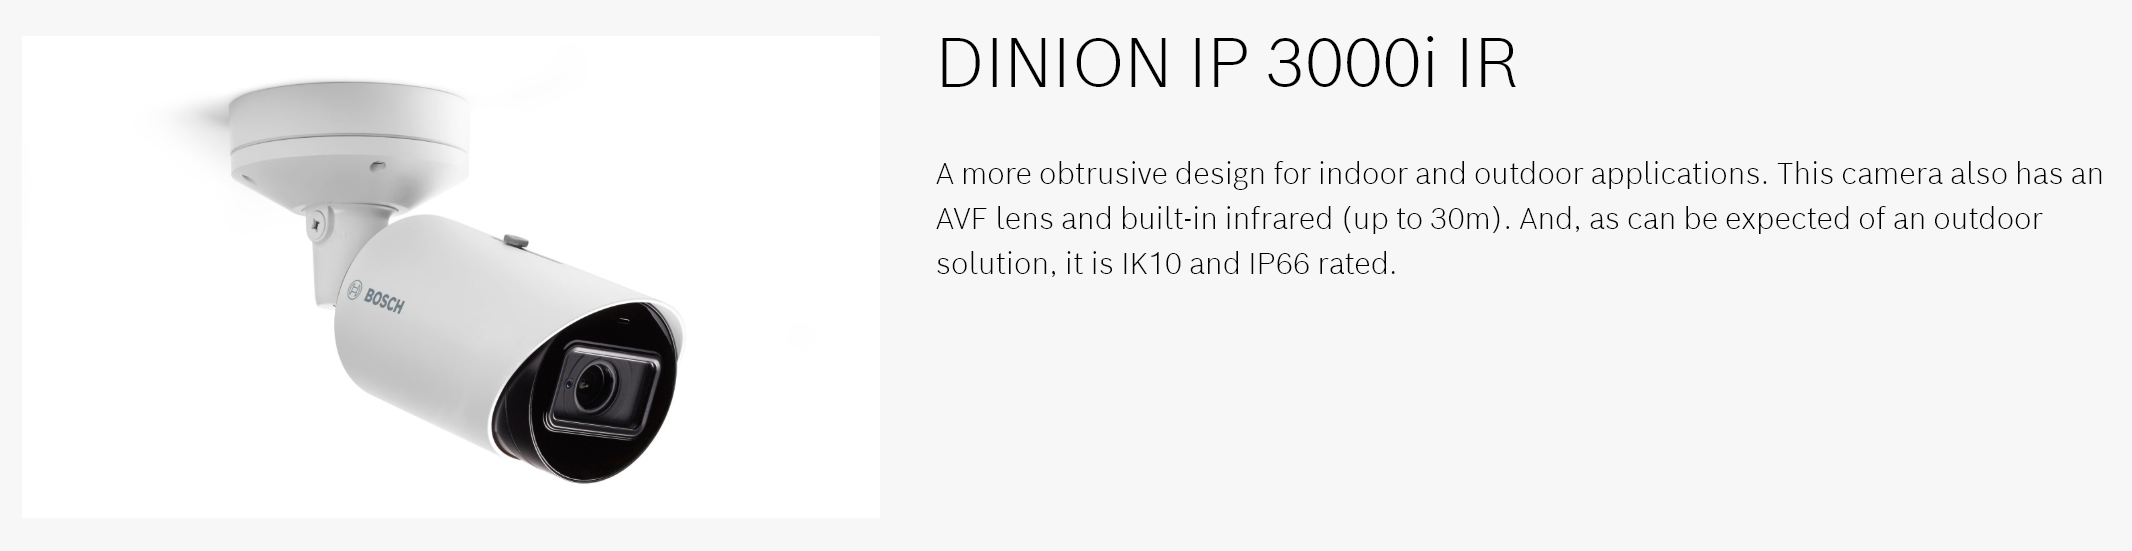 Bosch Dinion IP 3000i IR banner